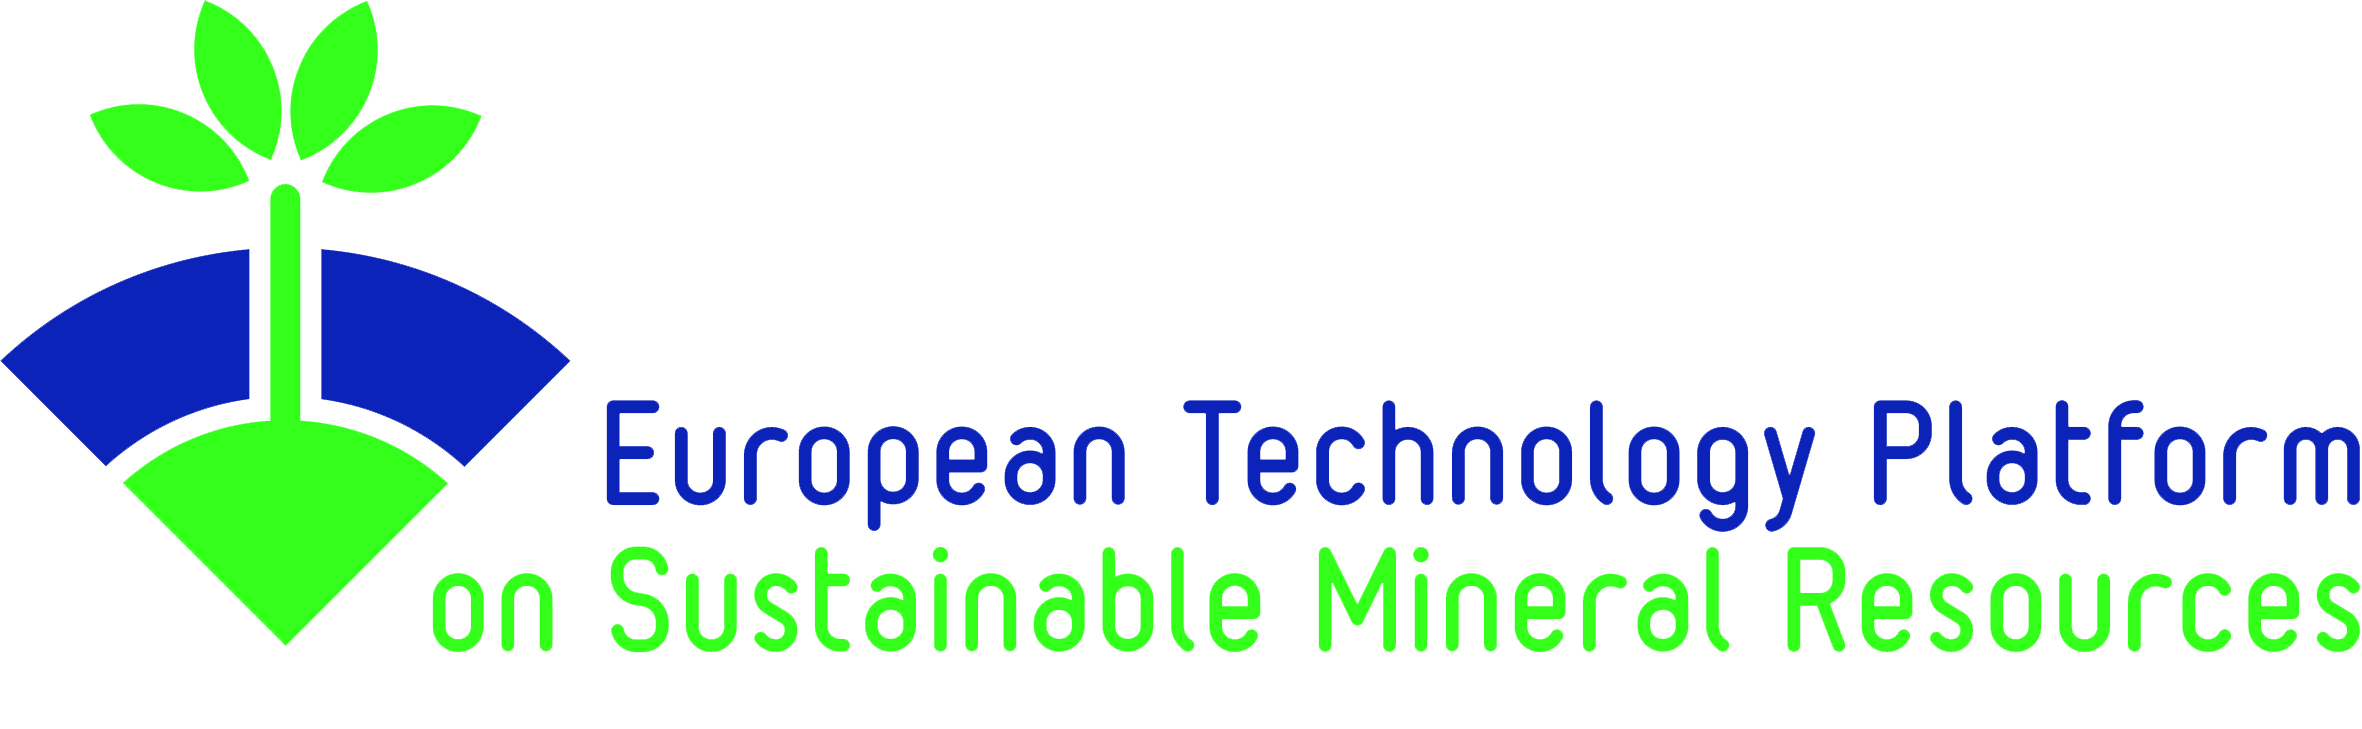 logo for European Technology Platform on Sustainable Mineral Resources